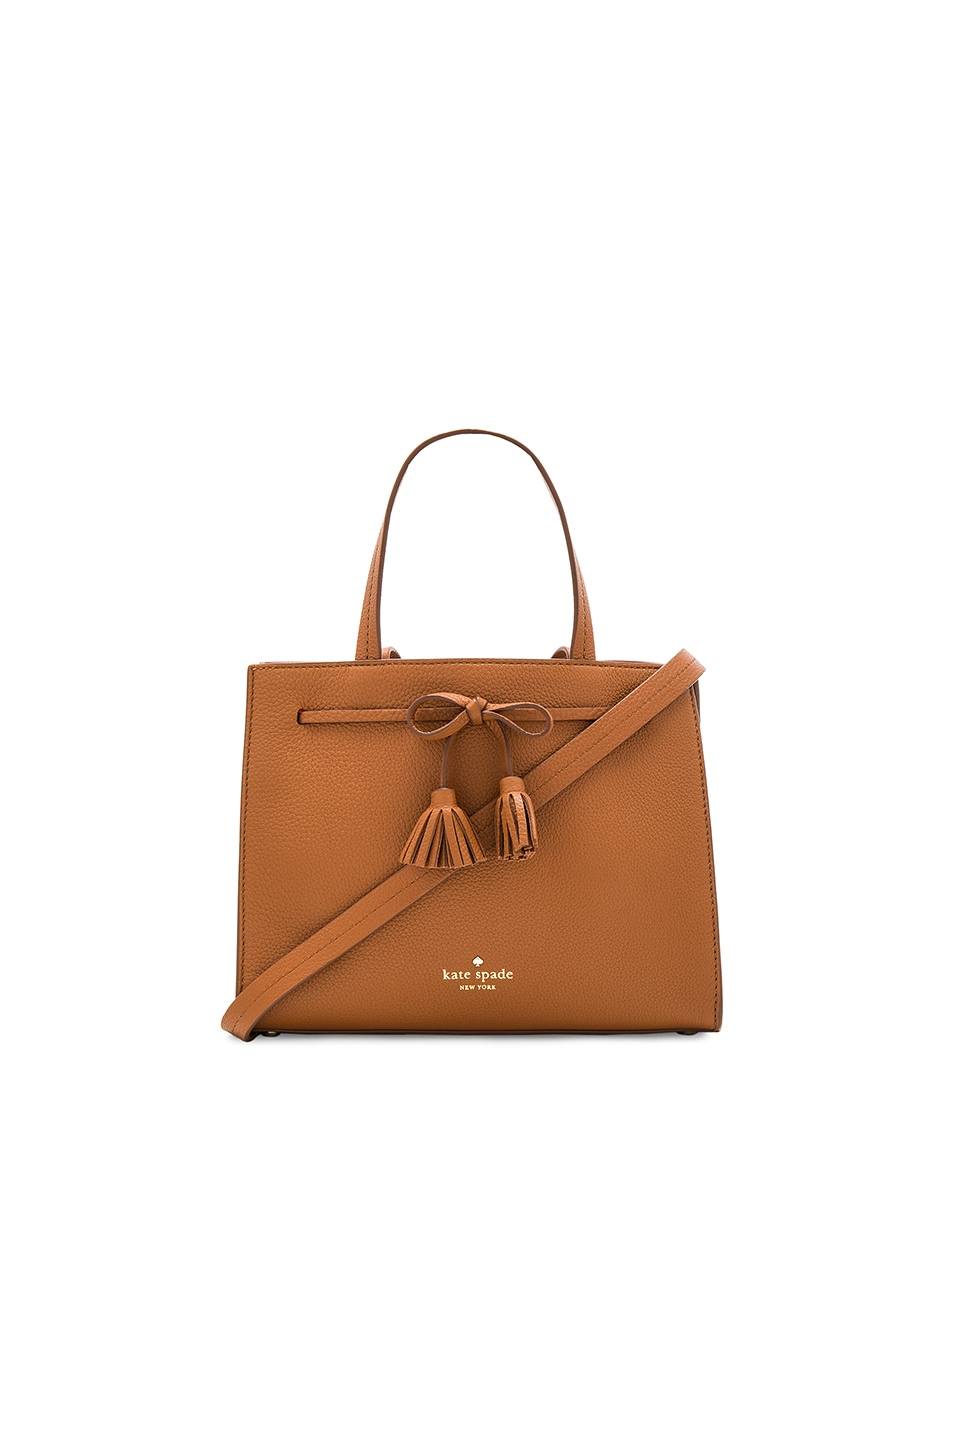 kate spade new york Small Isobel Tote in Warm Cognac & Saffron